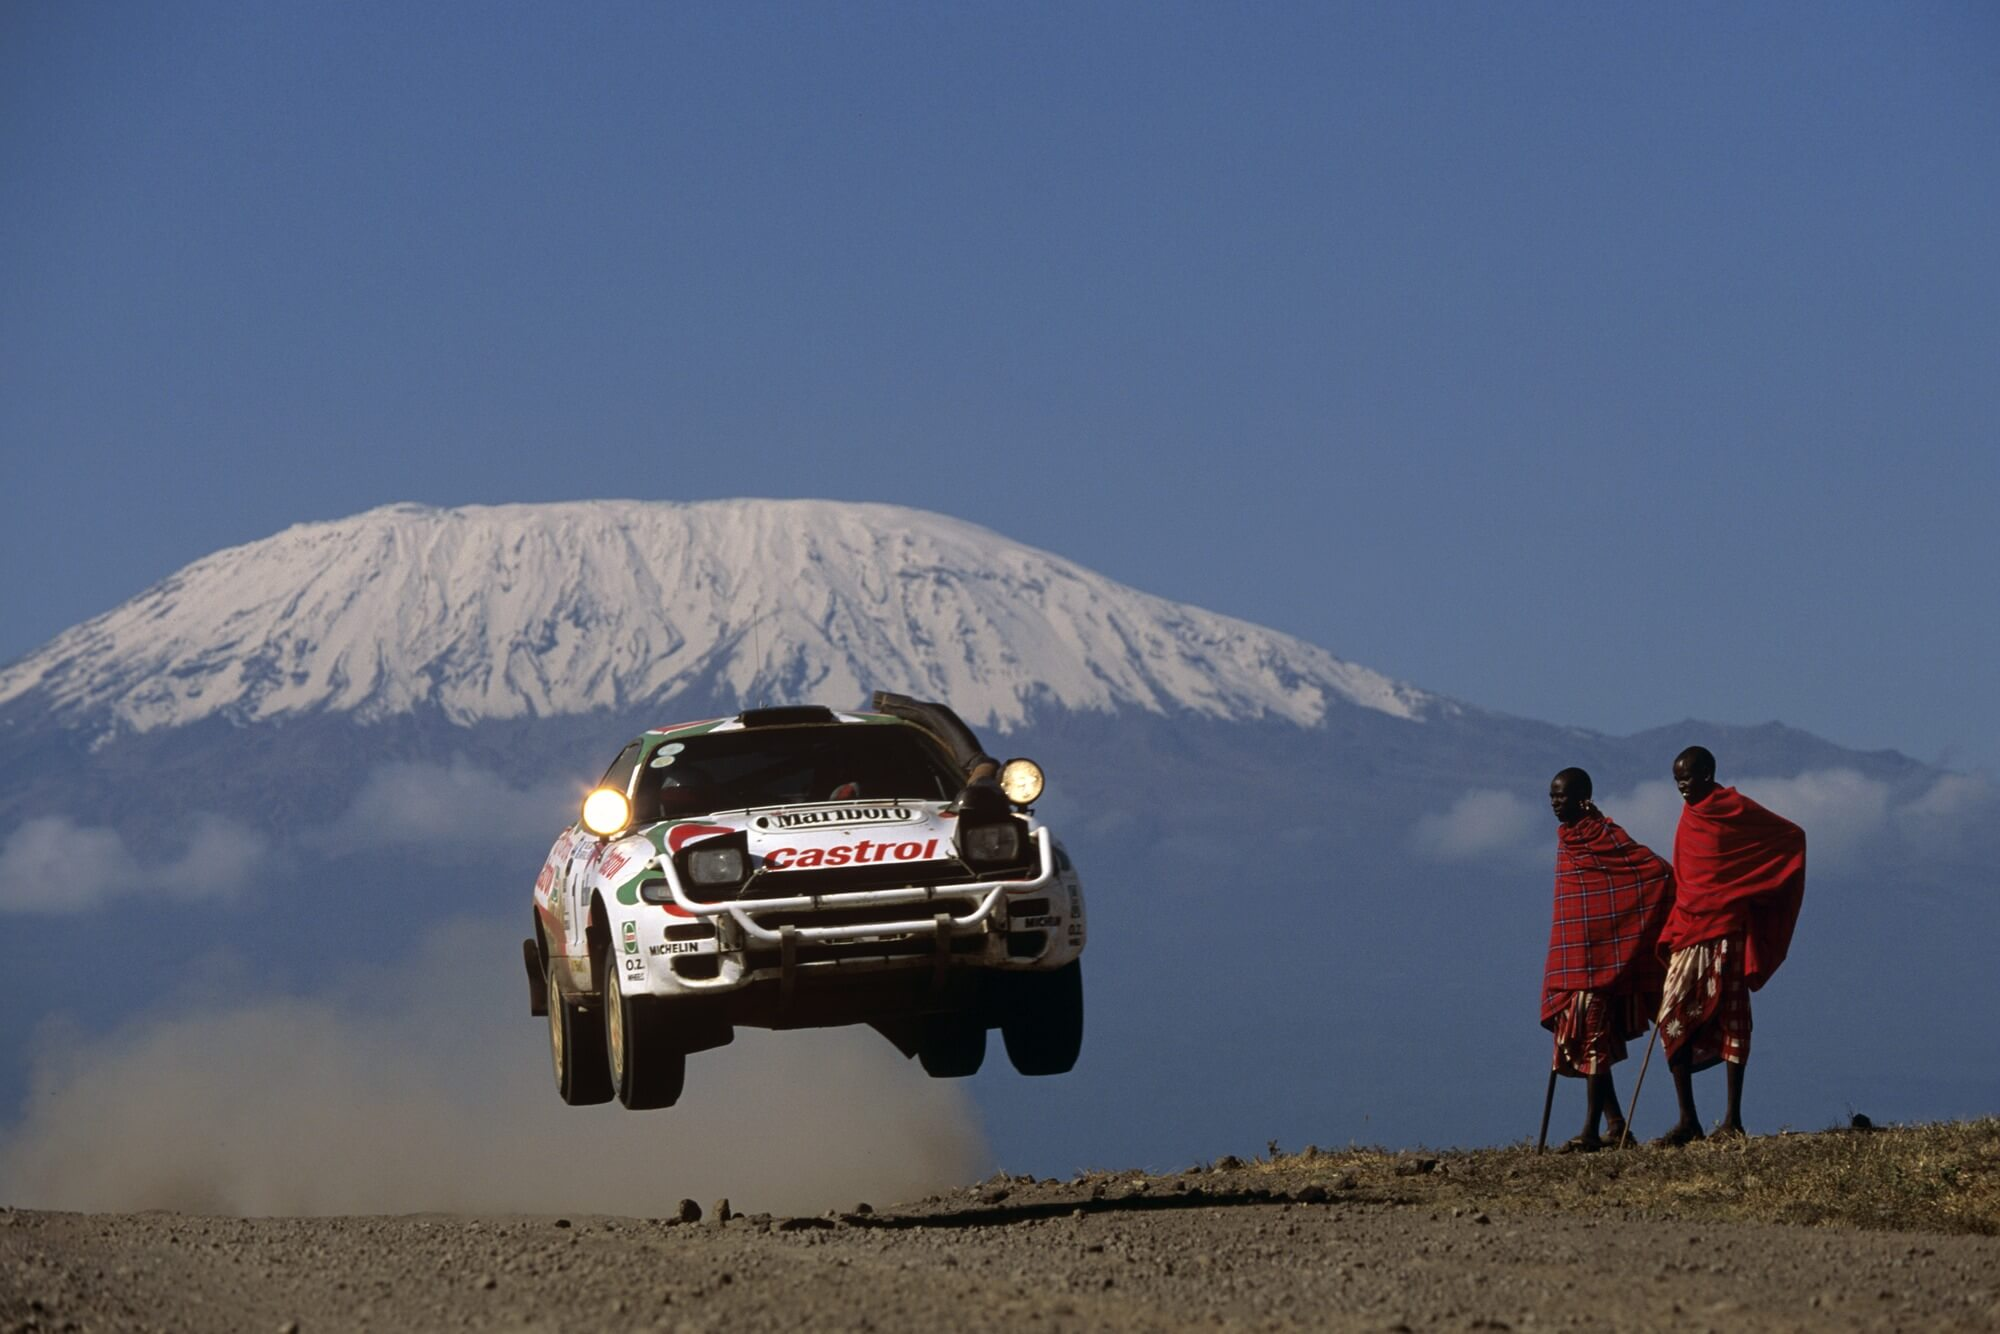 Juha Kankkunenu0027s Toyota Celica, East African Safari Rally Wall Mural Photo  Wallpaper